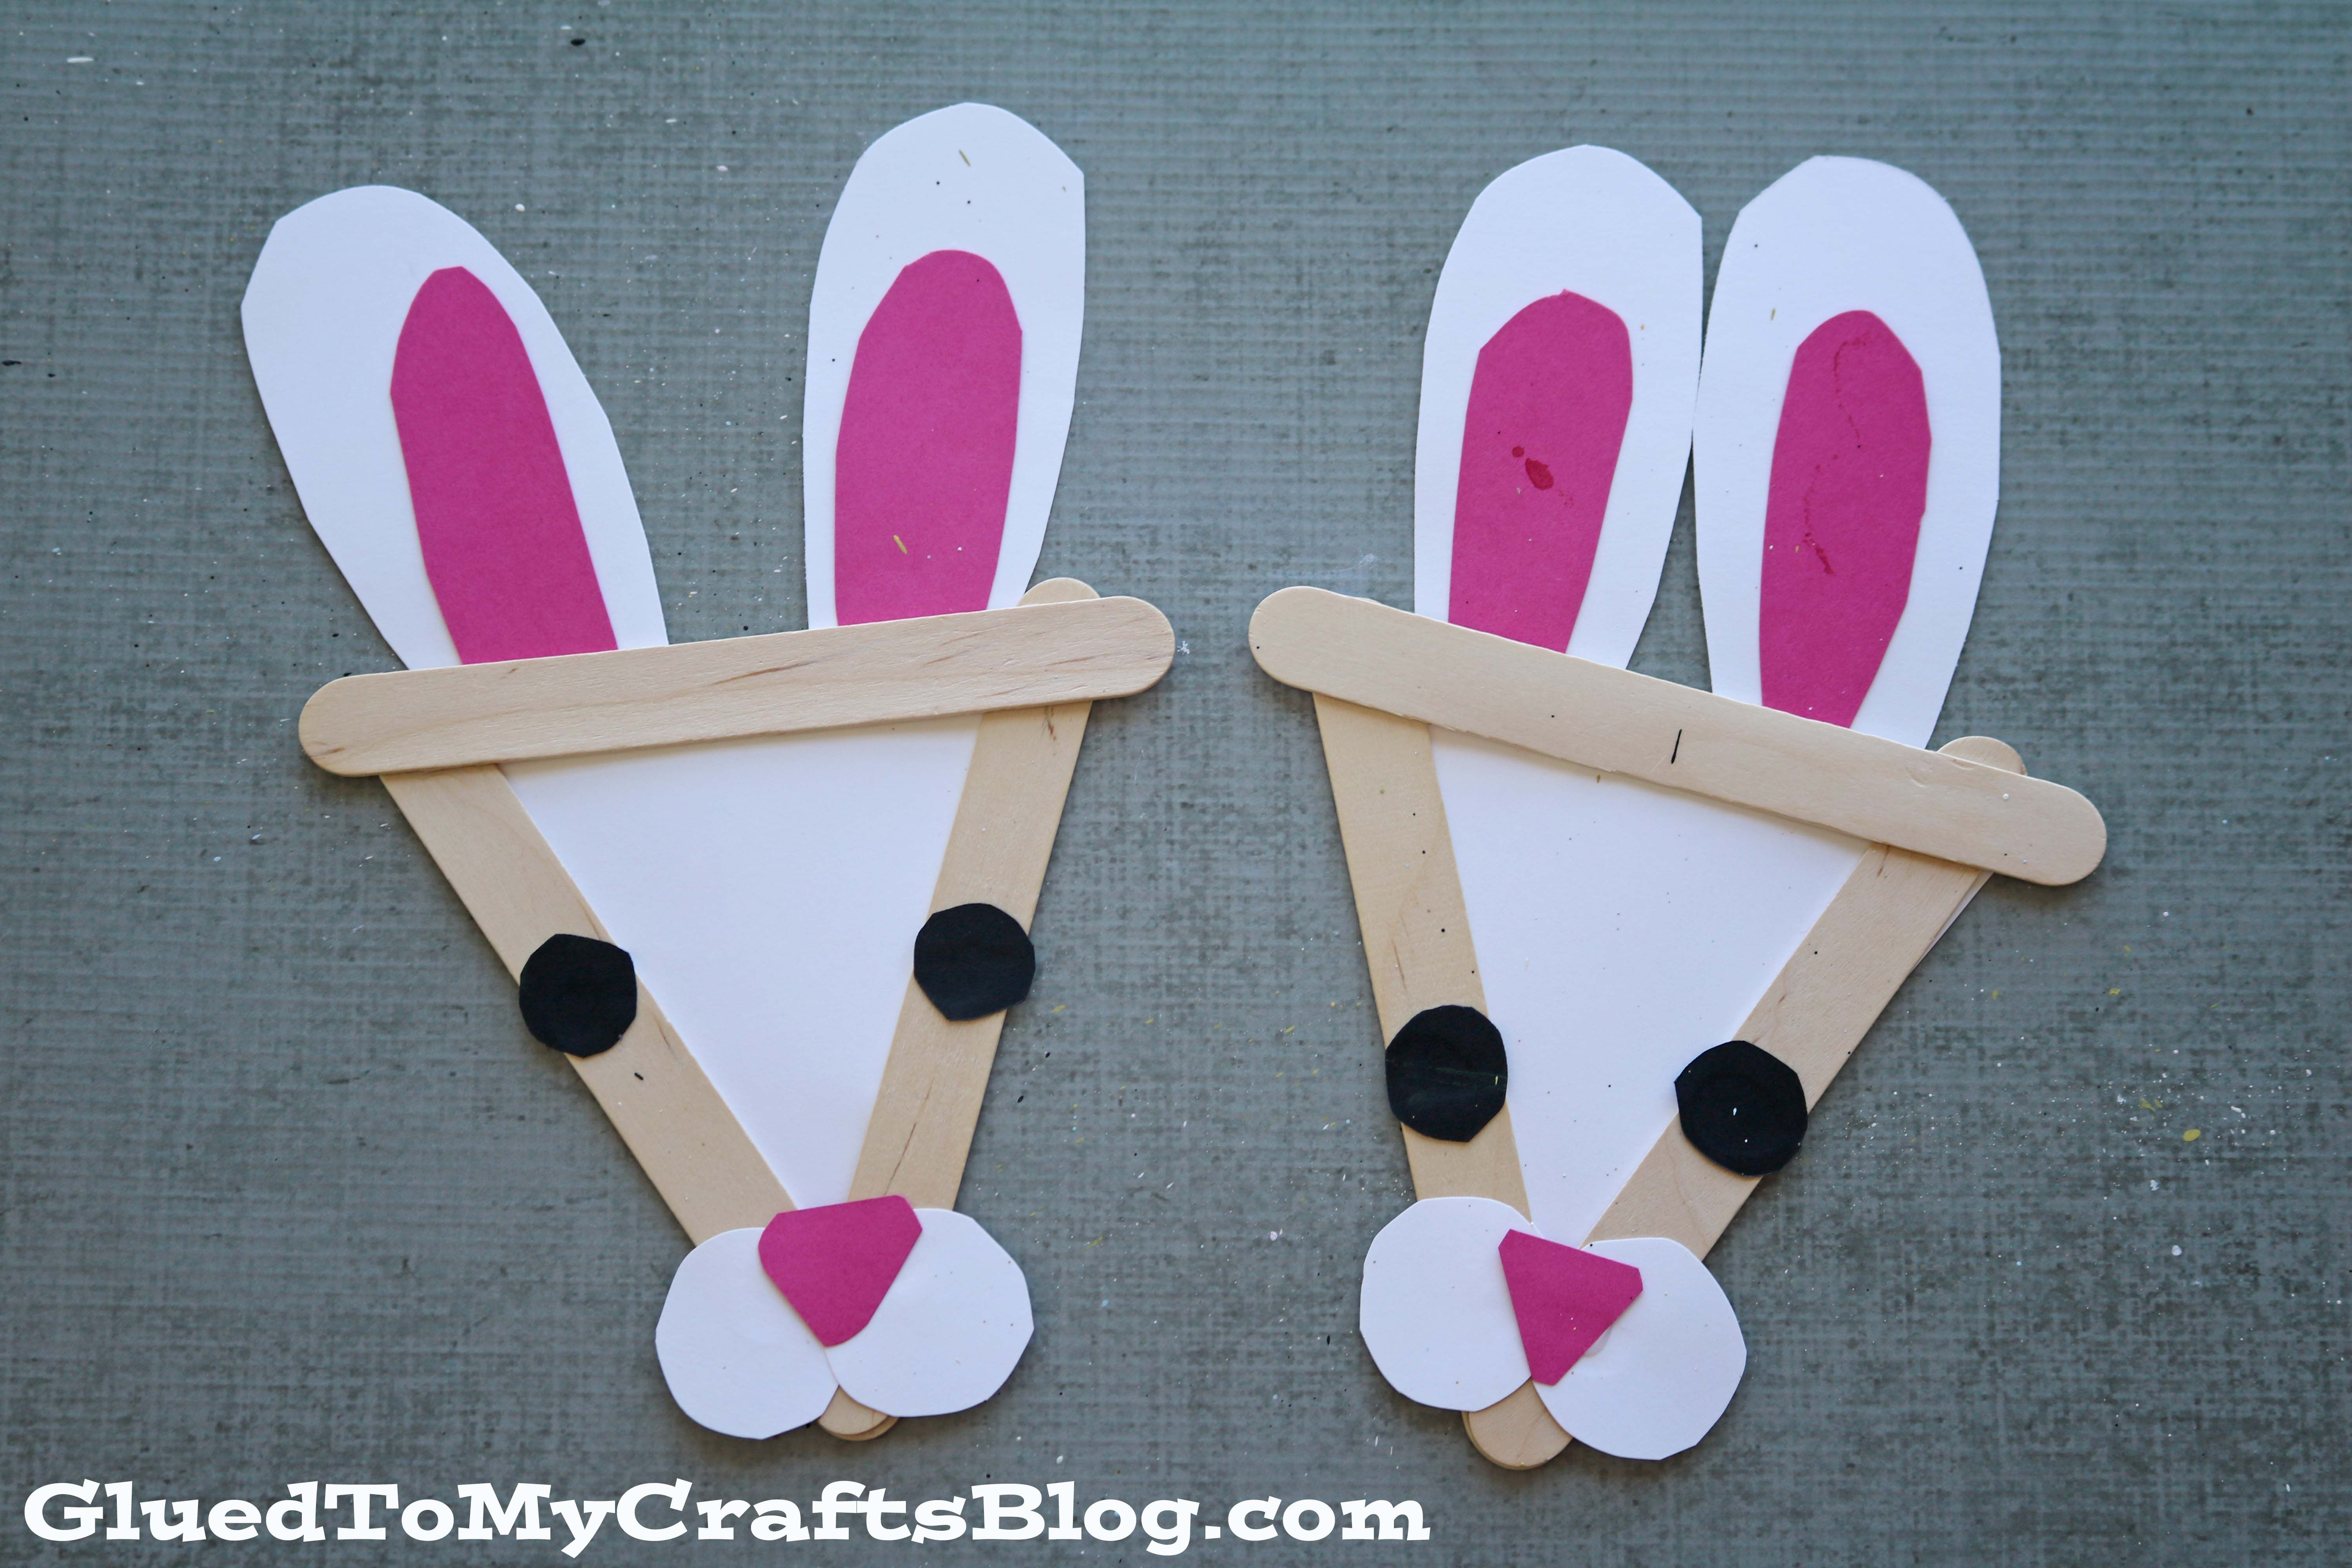 Attractive Crazy Craft Ideas For Kids Part - 4: Popsicle Stick Bunny - Kid Craft